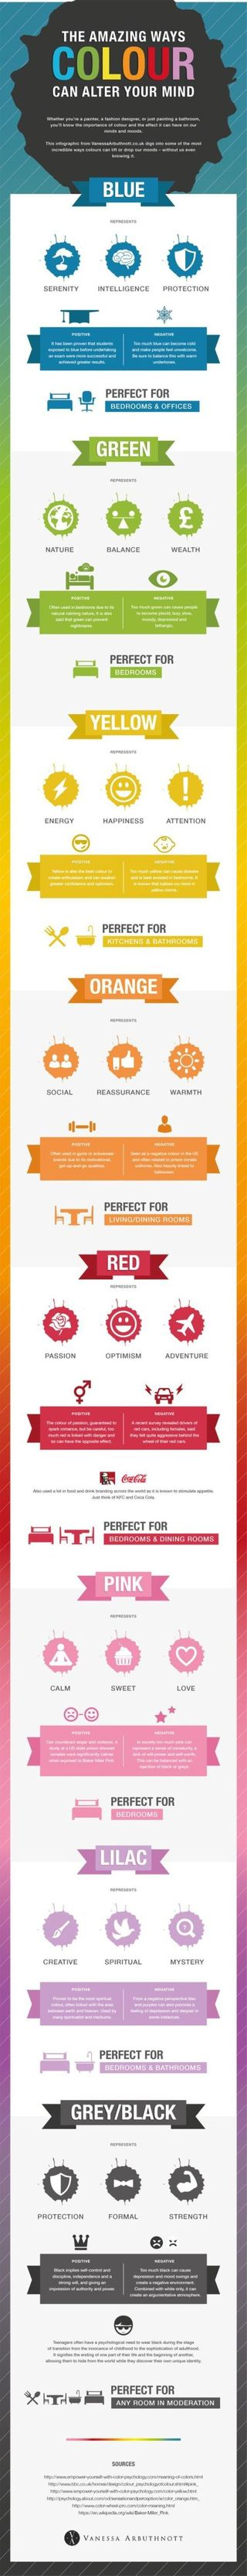 How Color Affects Mood Bedroom Colors